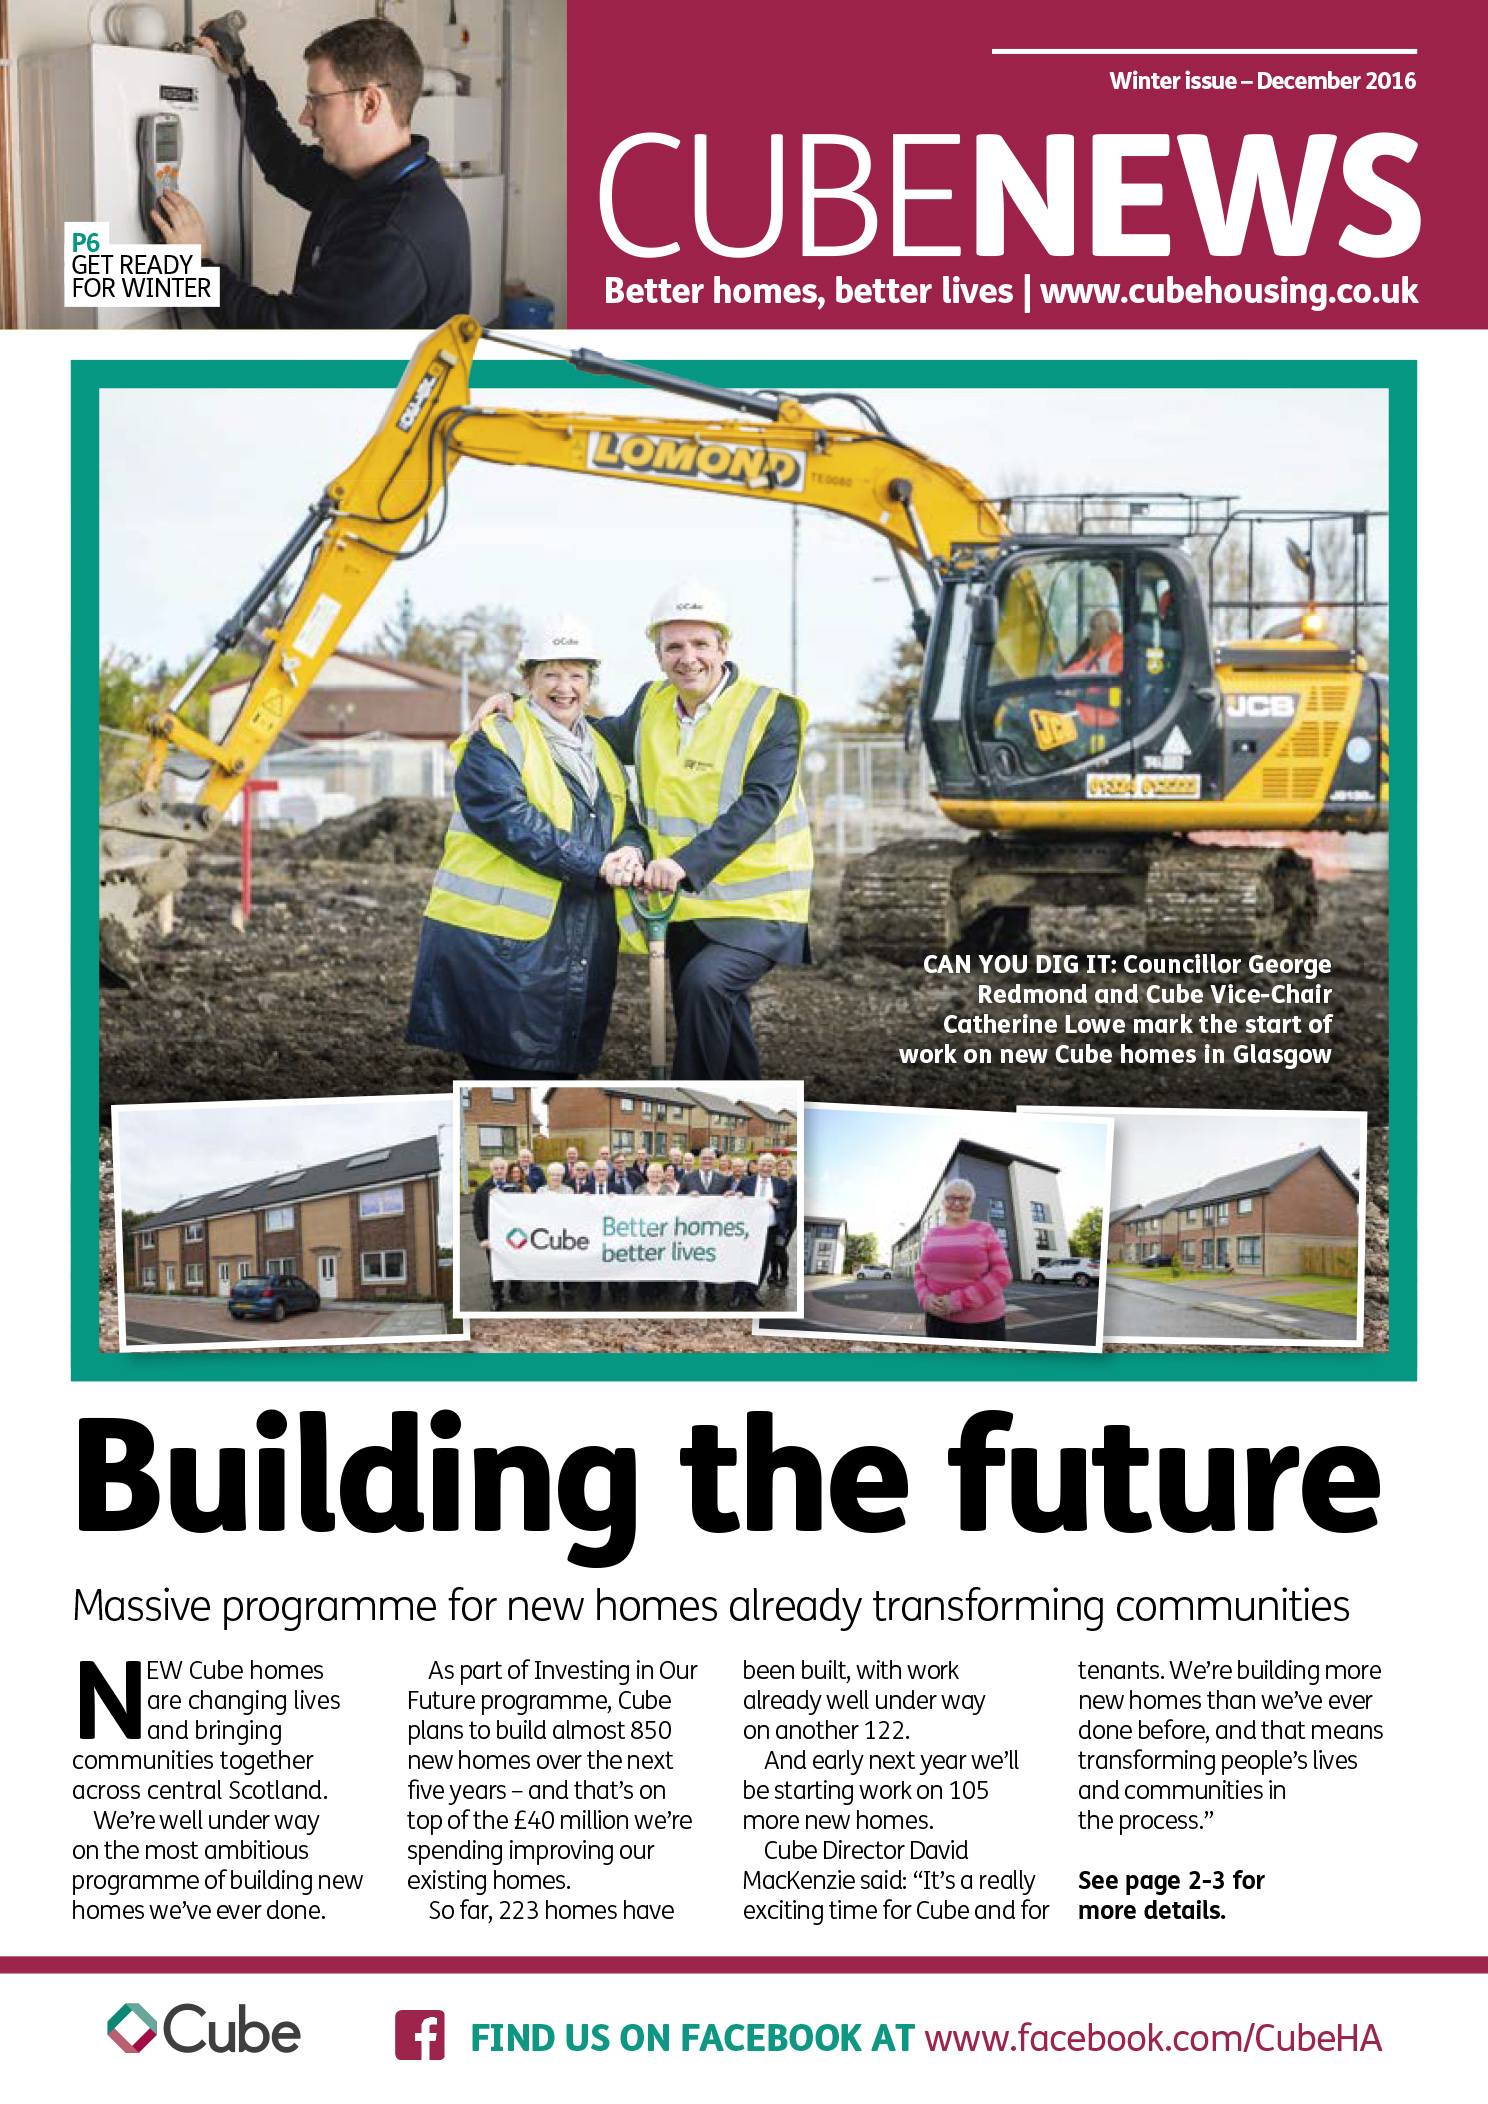 Winter 2016 issue of Cube News